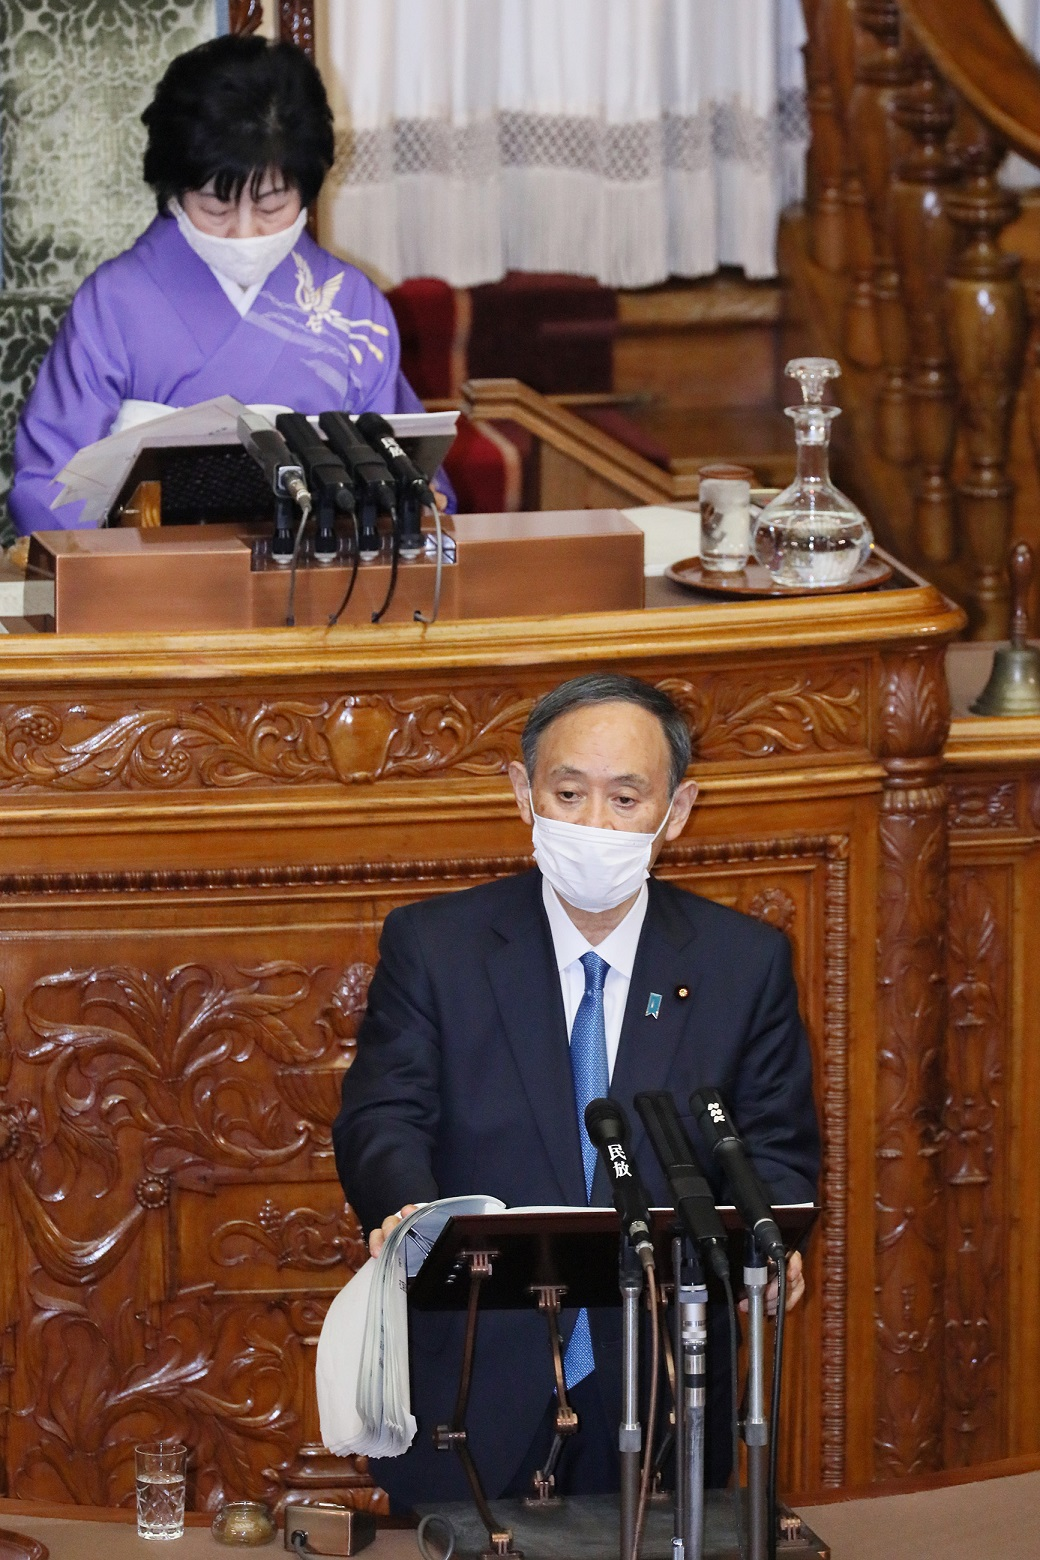 Photograph of the Prime Minister delivering a policy speech during the plenary session of the House of Councillors (1)